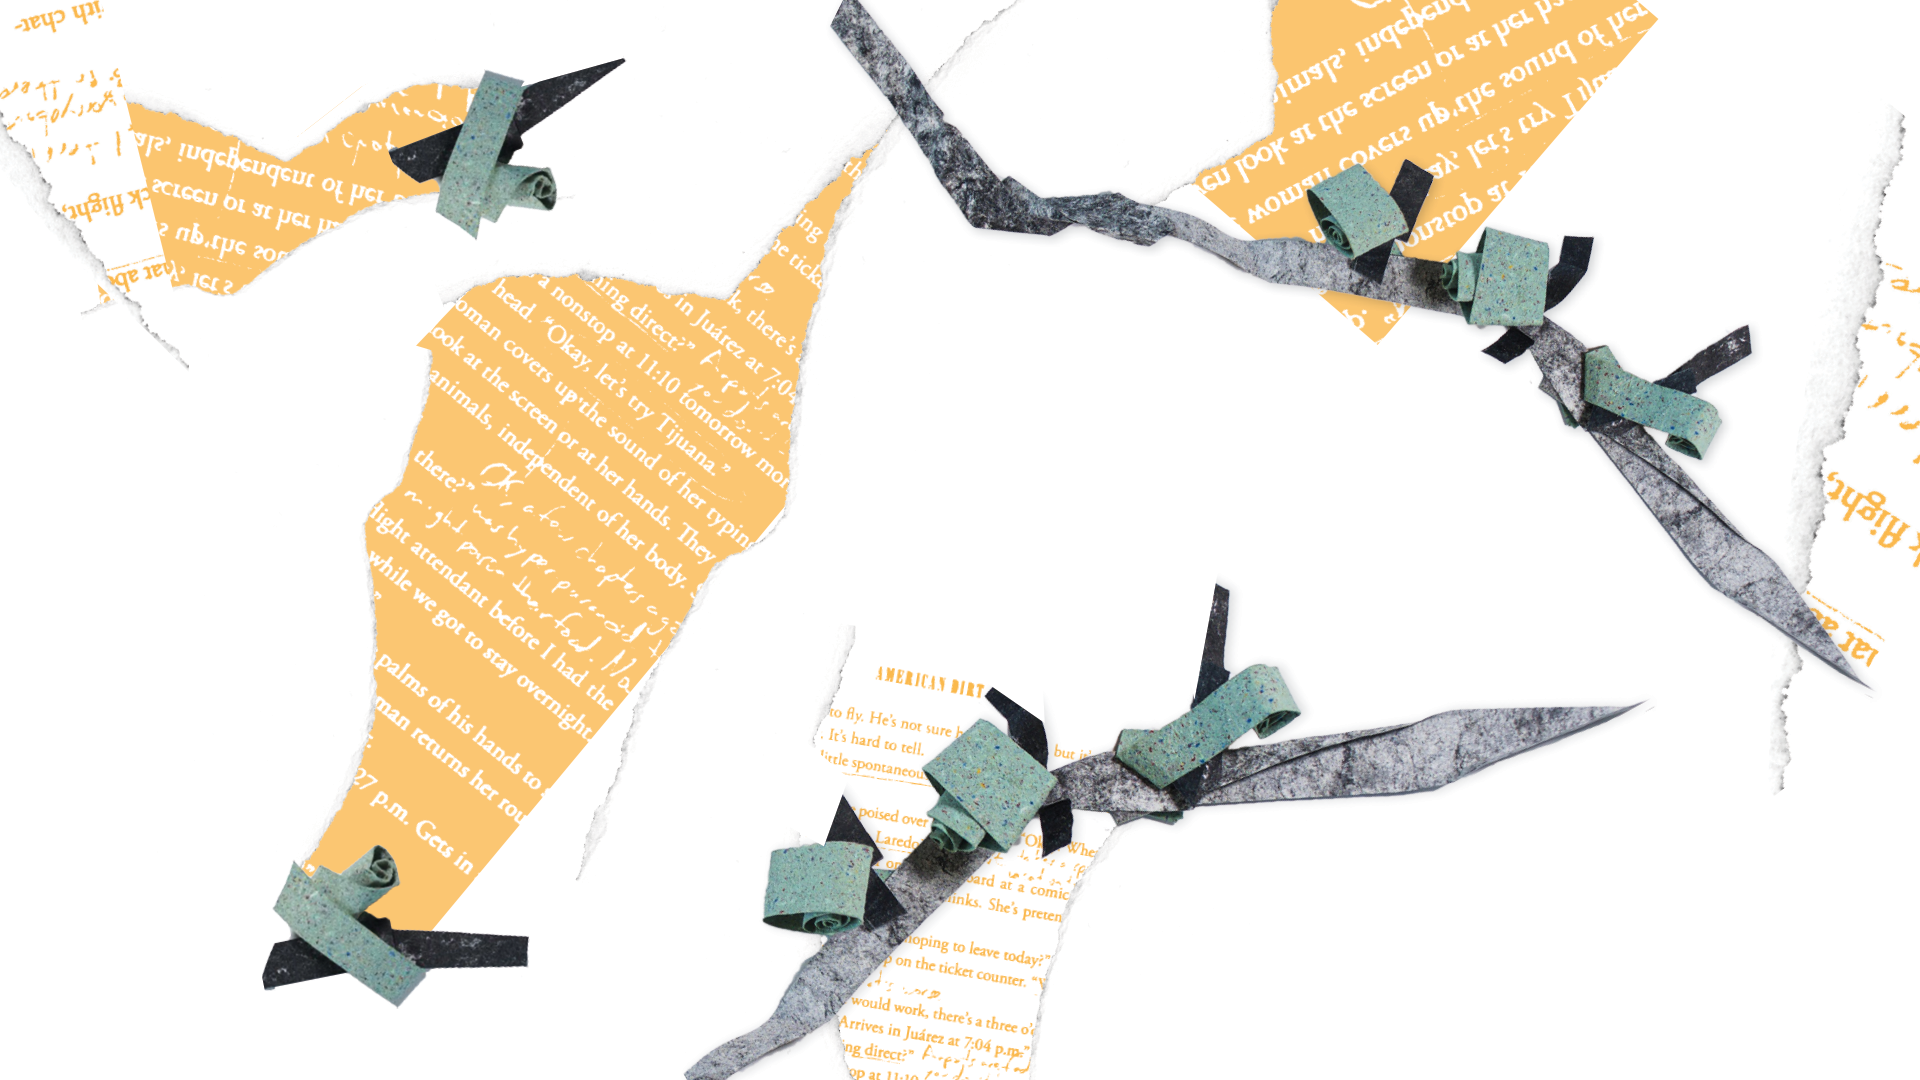 A papercut collage of pages from American Dirt by Jeanine Cummins, abstractly resembling barbed wire. The pages of American Dirt have crossings-out and notes on them, corrections made by the reviewer.